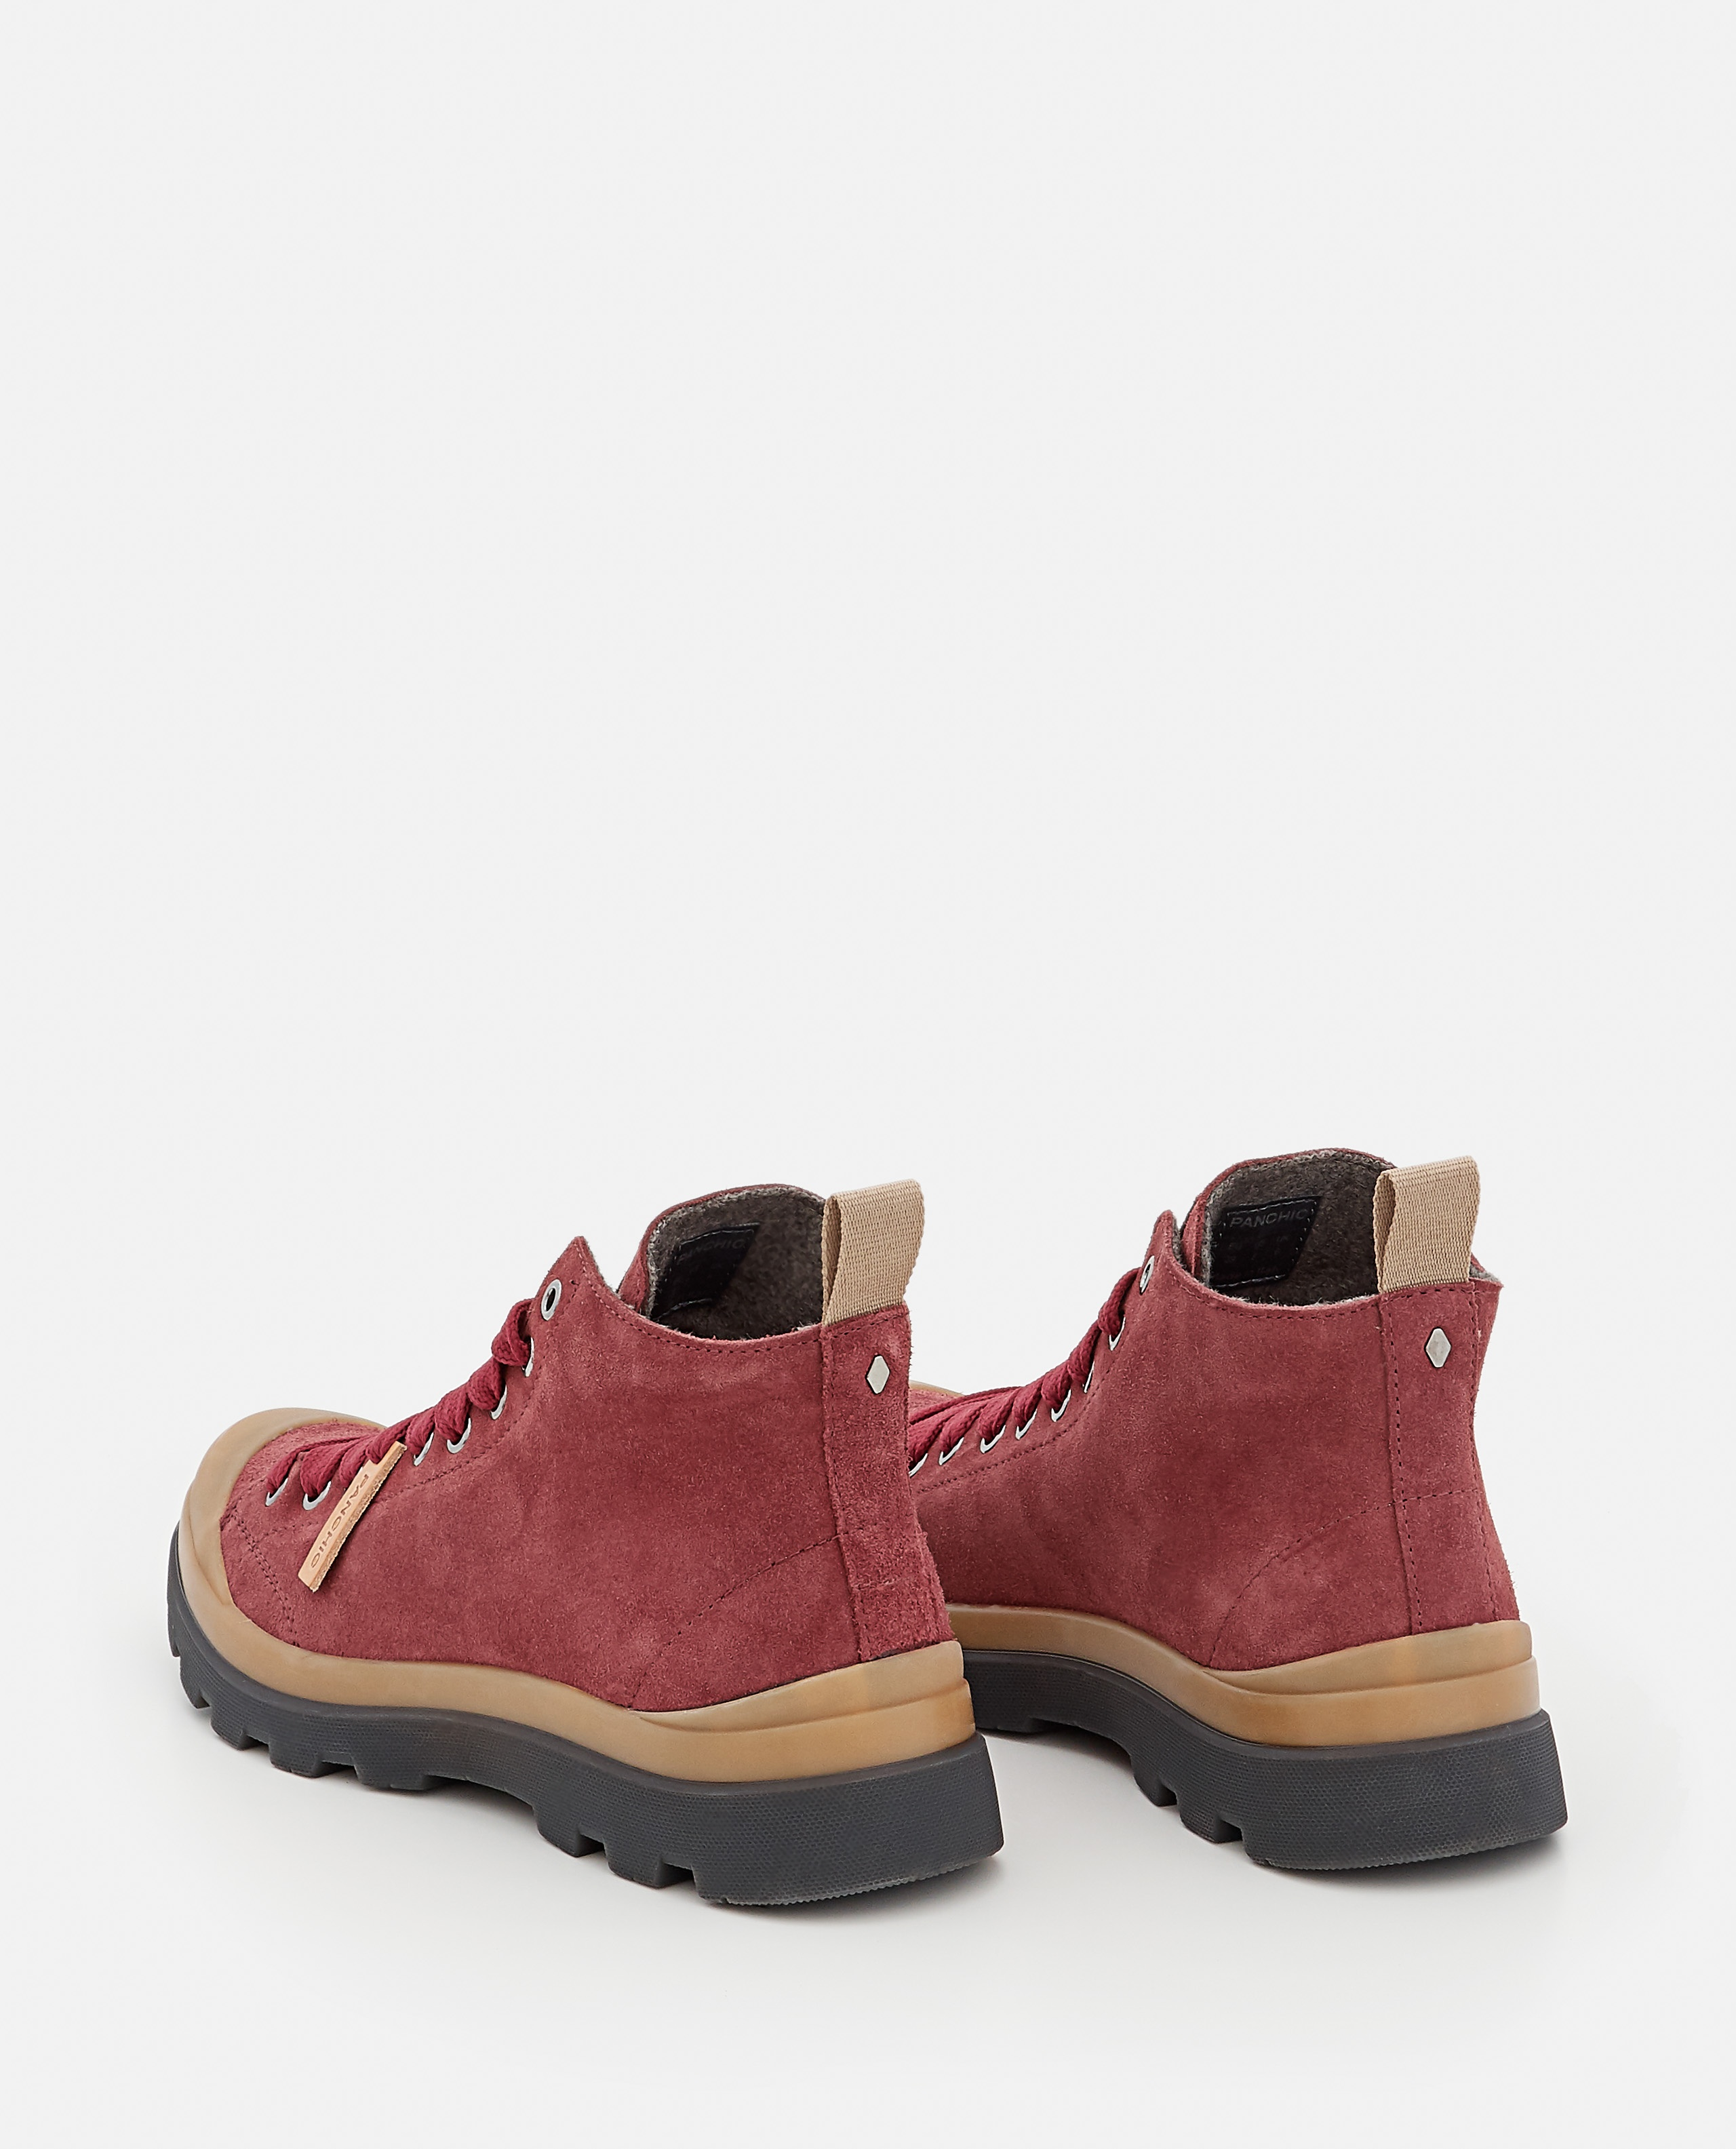 P03 SUEDE ANKLE BOOTS Women Panchic 000350250050963 3